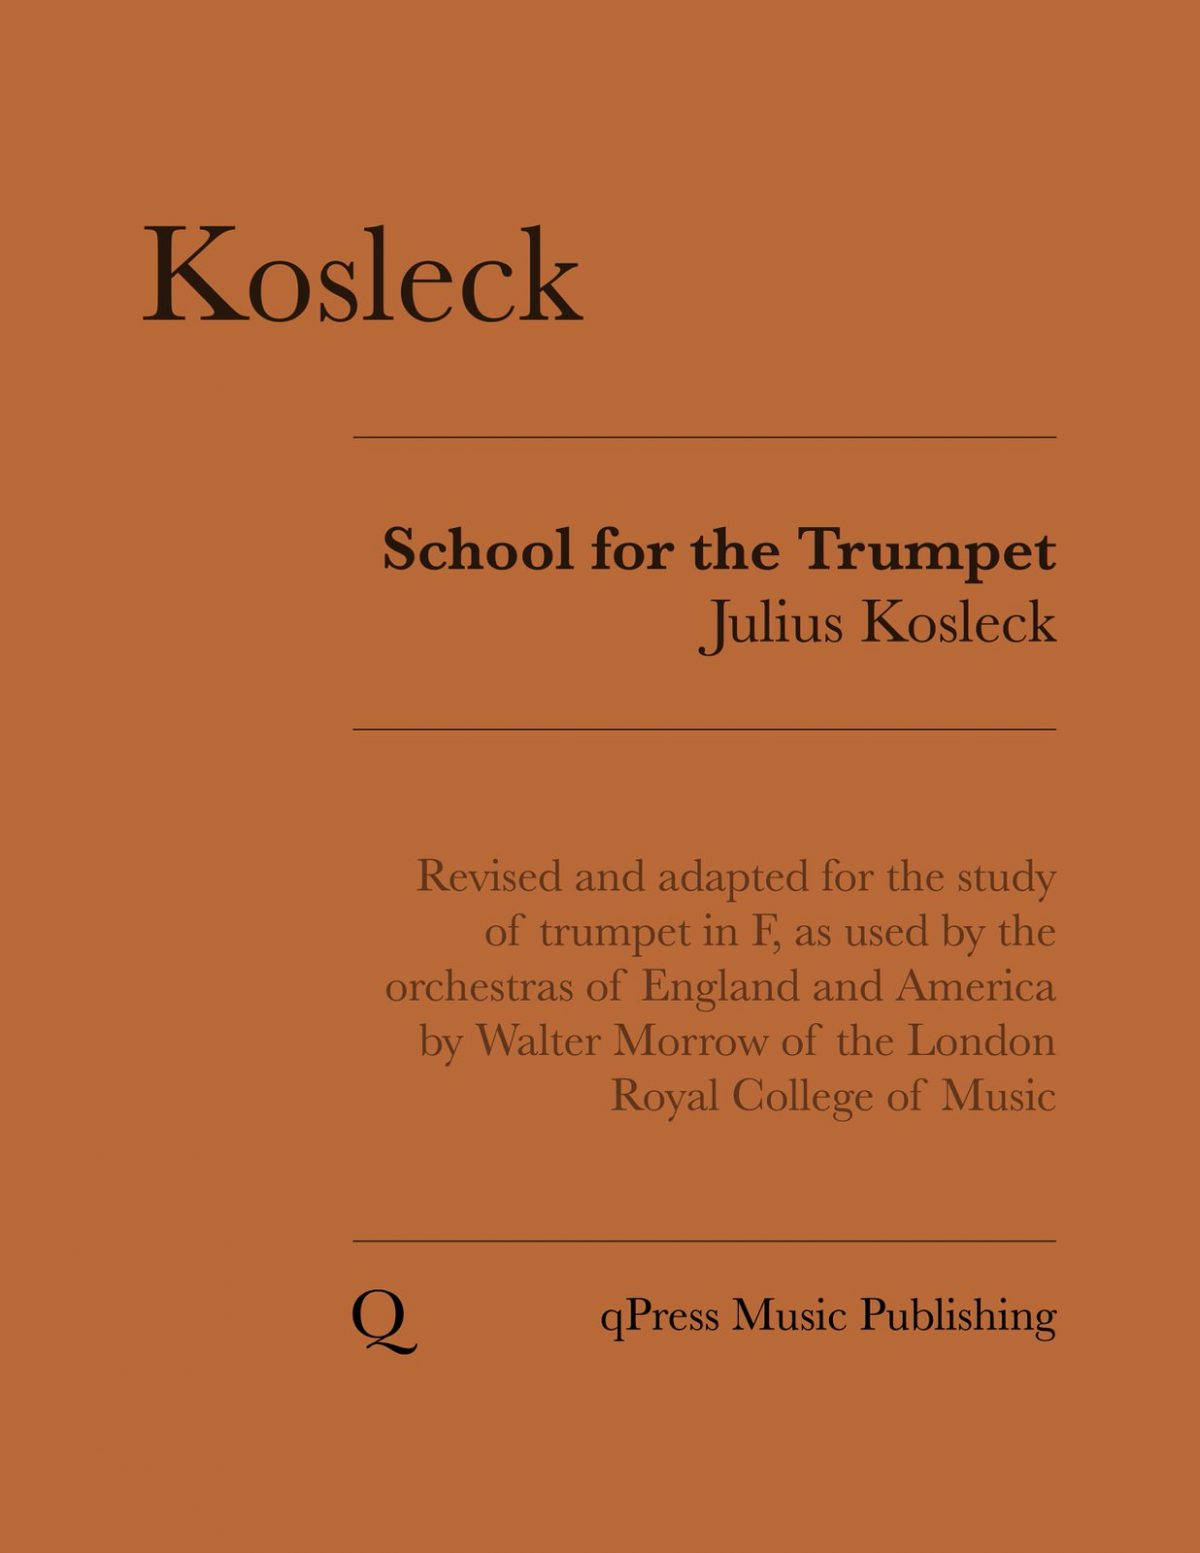 Kosleck's School For Trumpet-p001